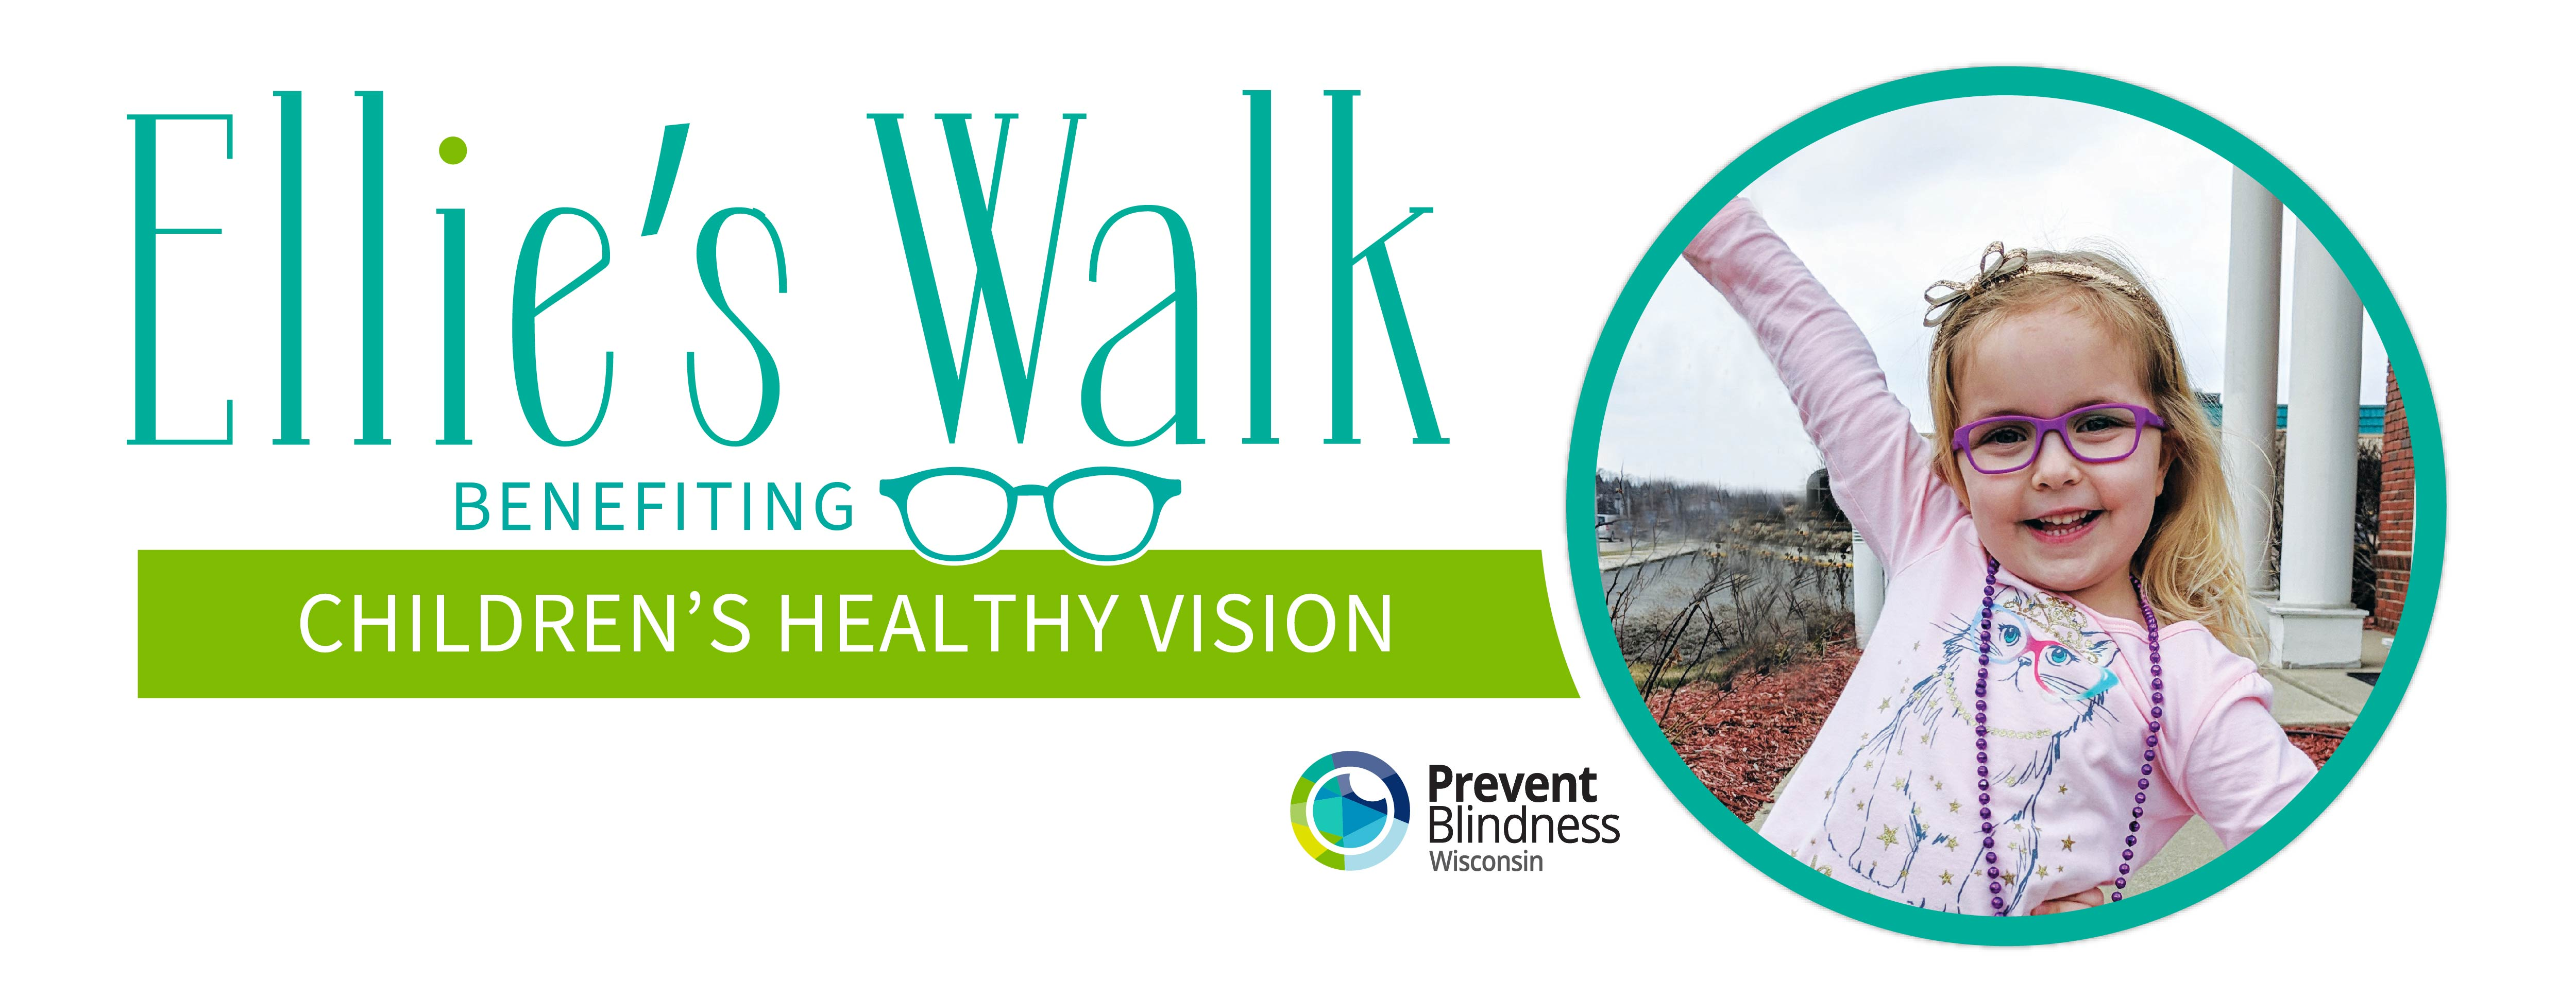 Ellie Walk-Prevent Blindness-web banner-1200x300